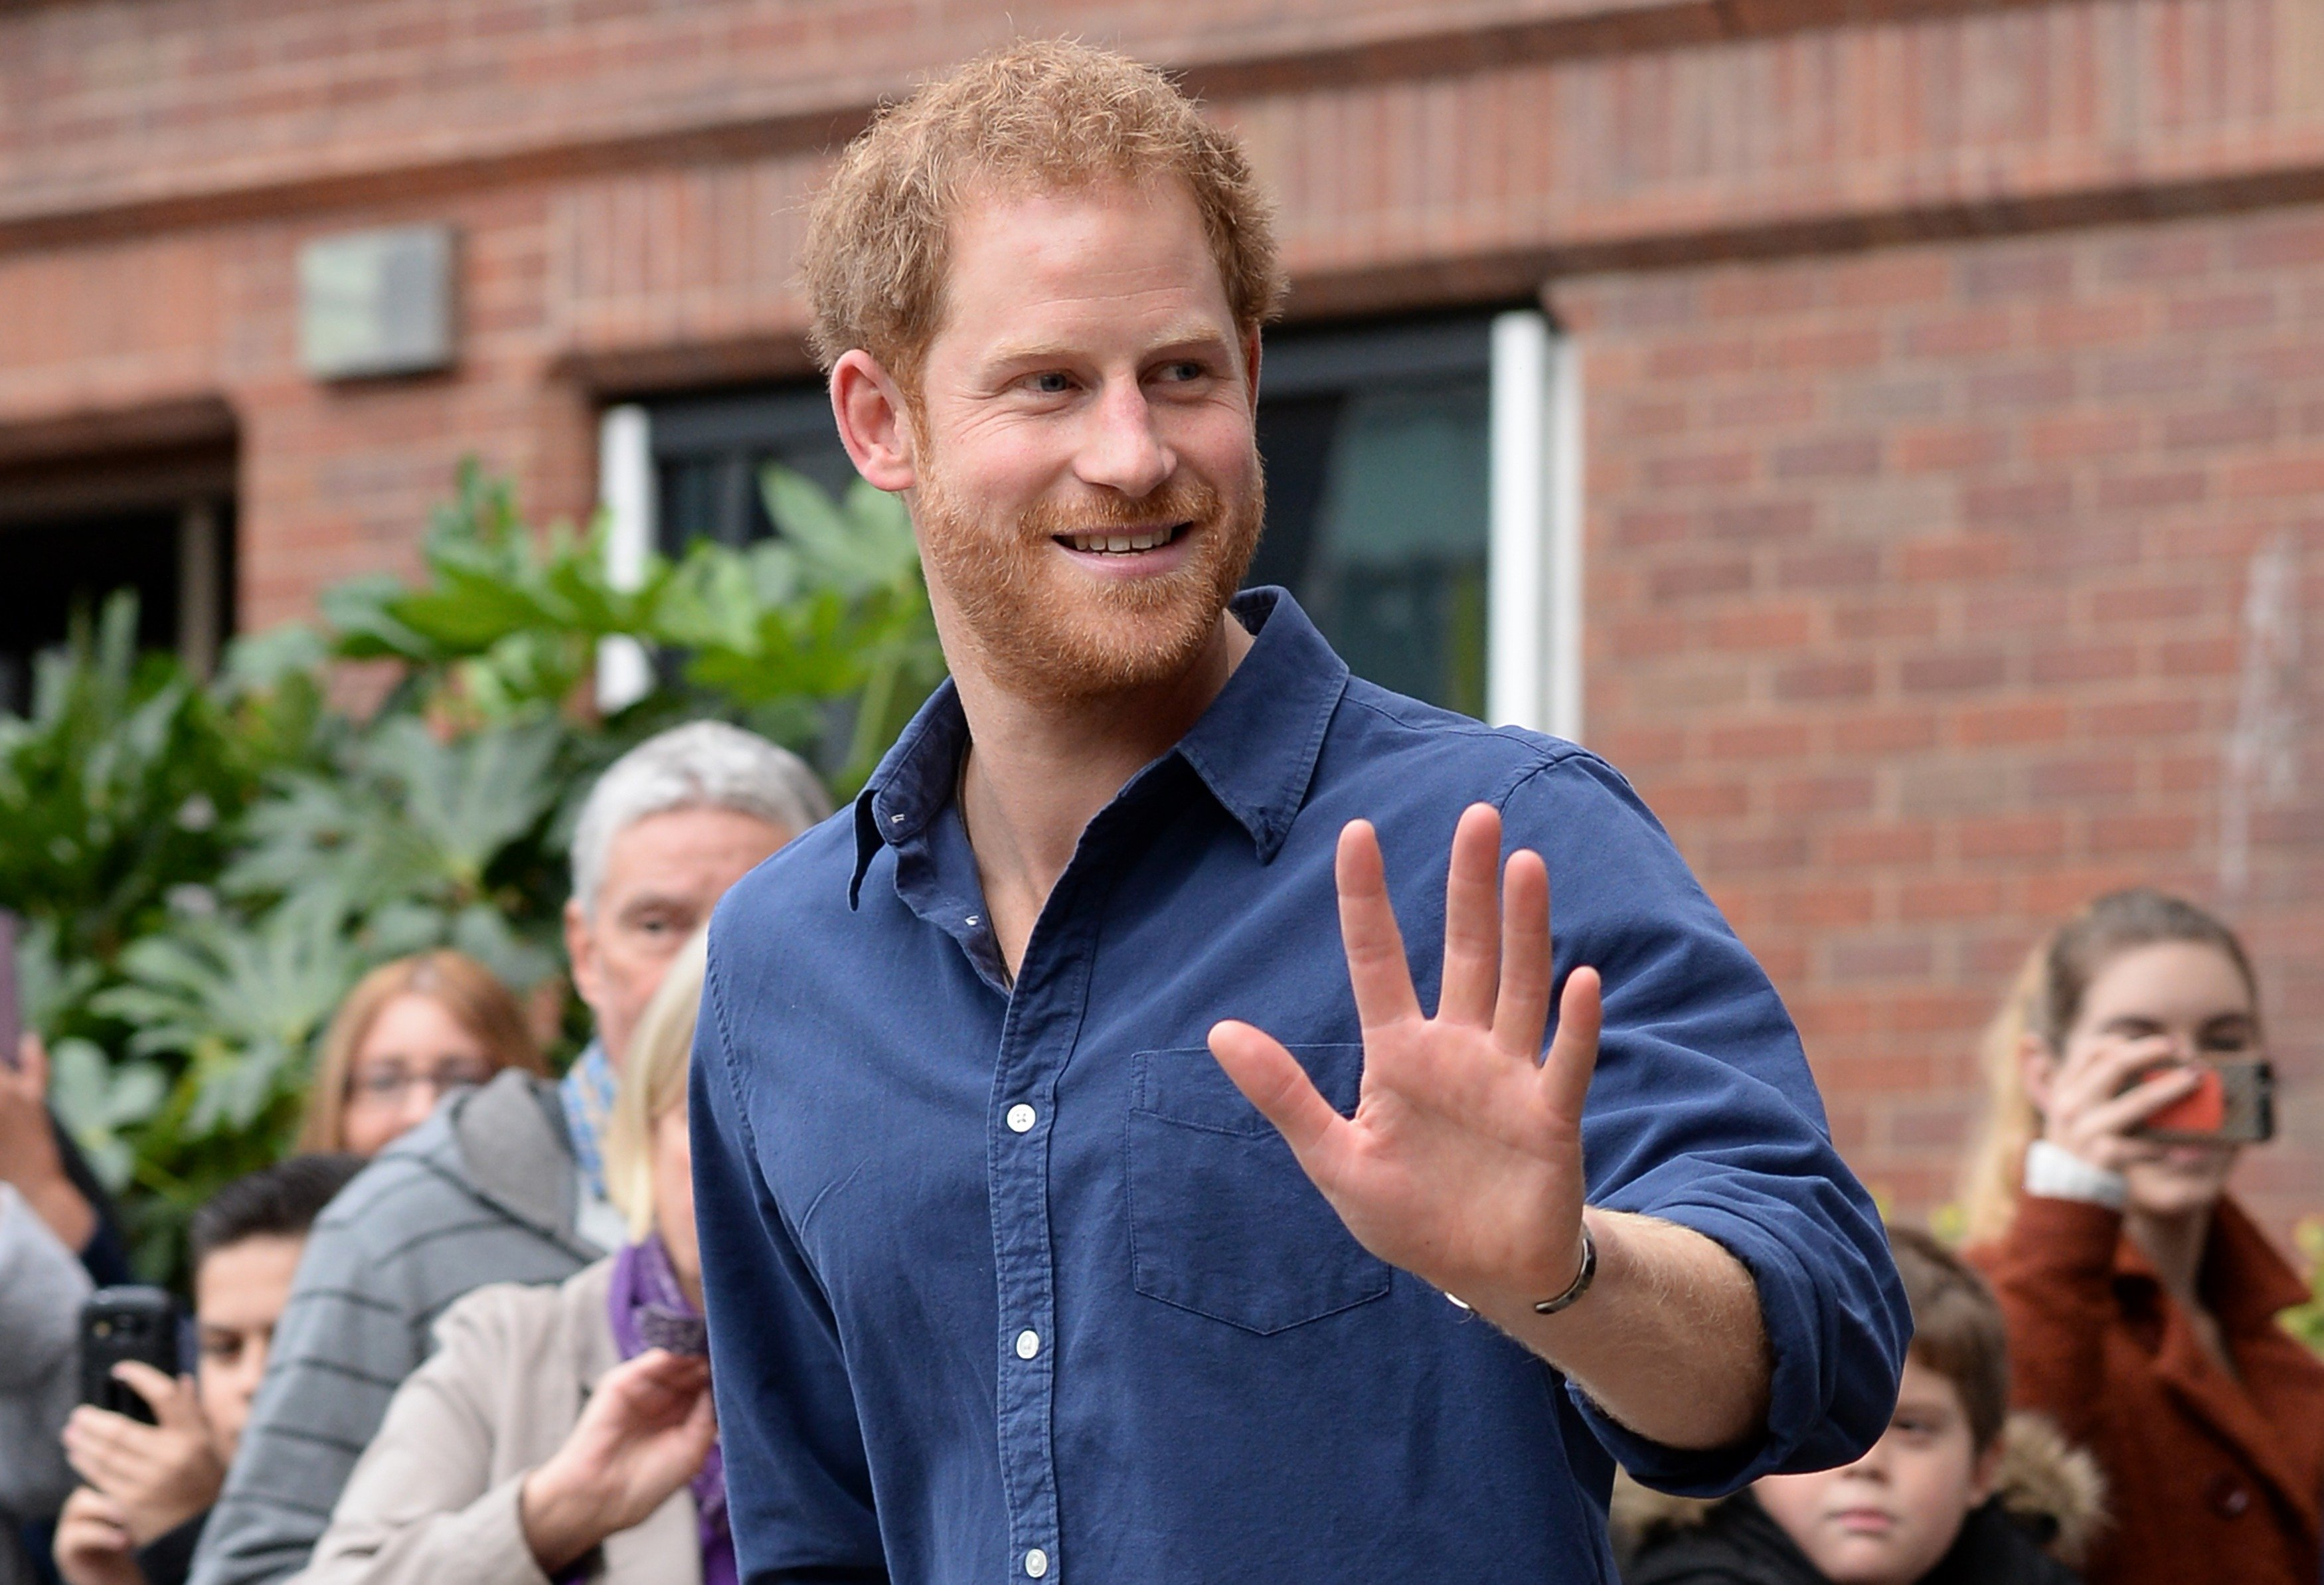 Prince Harry waving while leaving Nottingham's new Central Police Station, 2016, Nottingham, England.   Photo: Getty Images